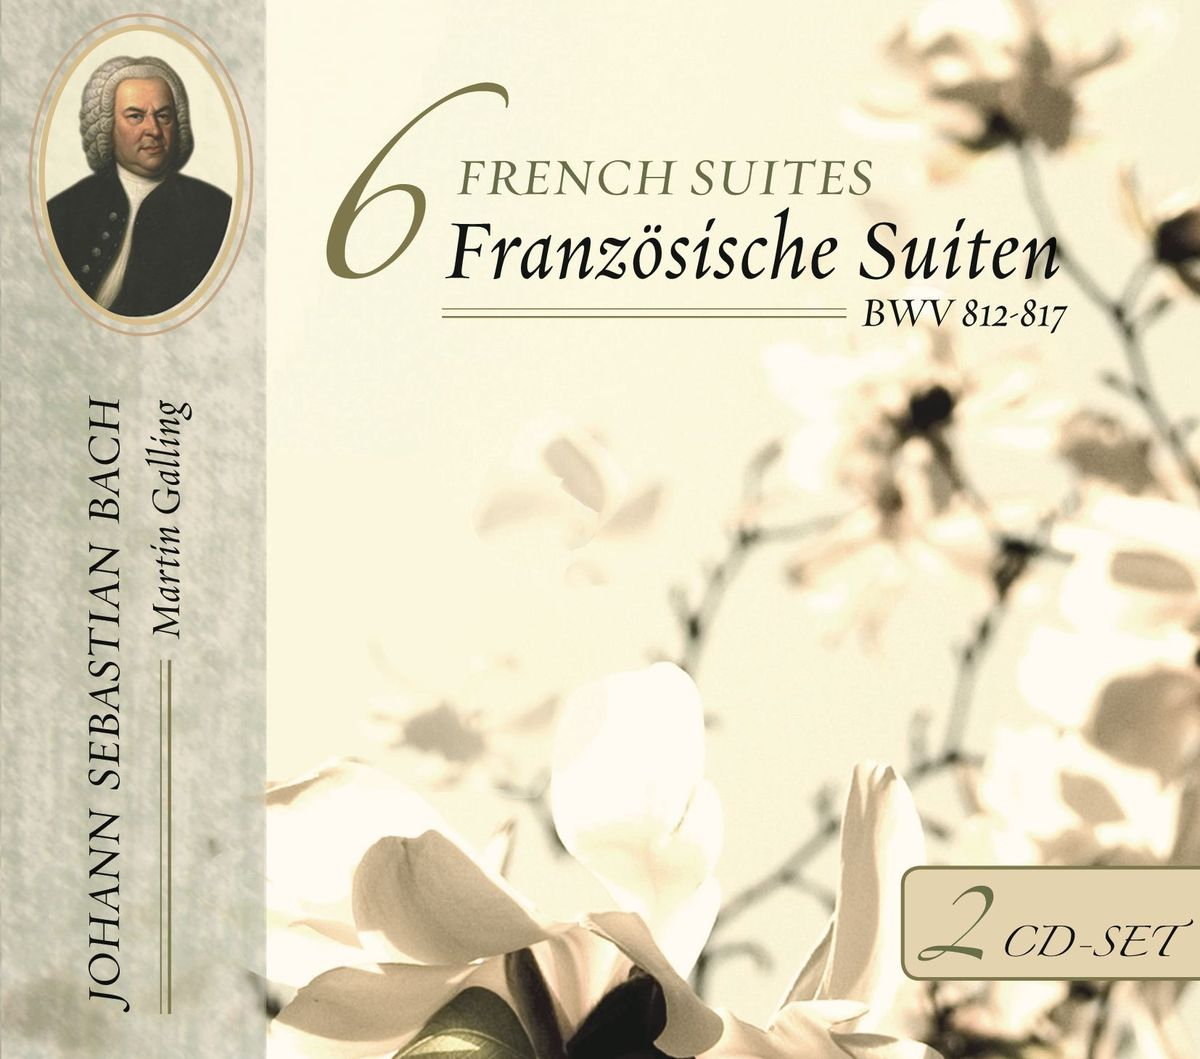 Martin Galling. Bach, J. S. : 6 French Suites, BWV 812-817 (2 CD) andras schiff bach french suites nos 1 6 italian concert 2 cd